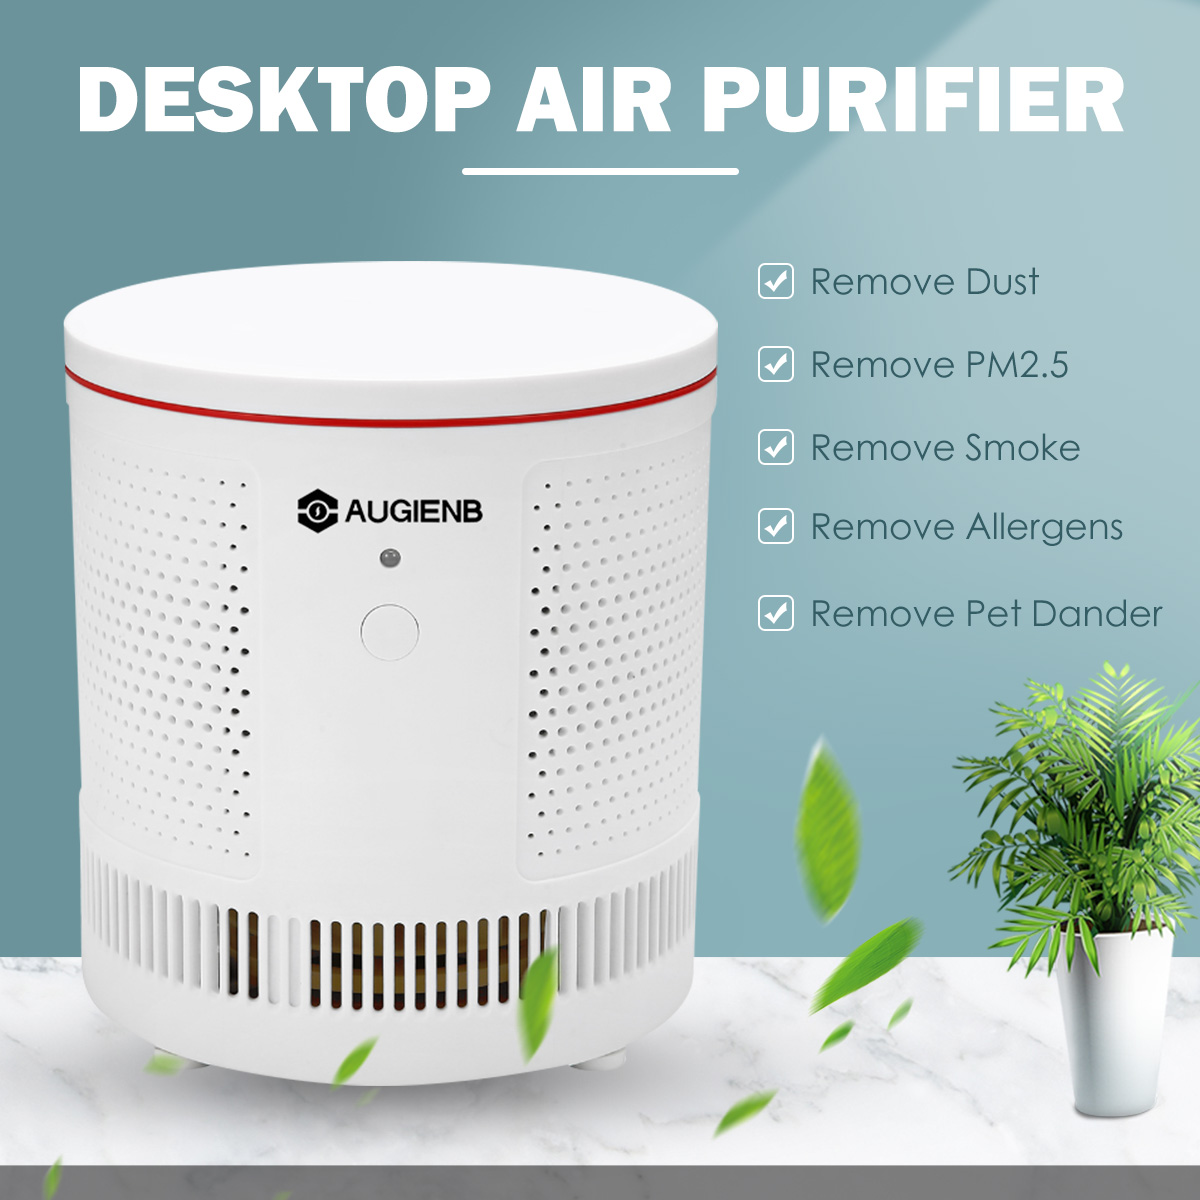 AUGIENB Air Purifier For Home True HEPA Filters Compact Desktop Purifiers Filtration Remove Formaldehyde Odor Smog  PM2.5 Anti